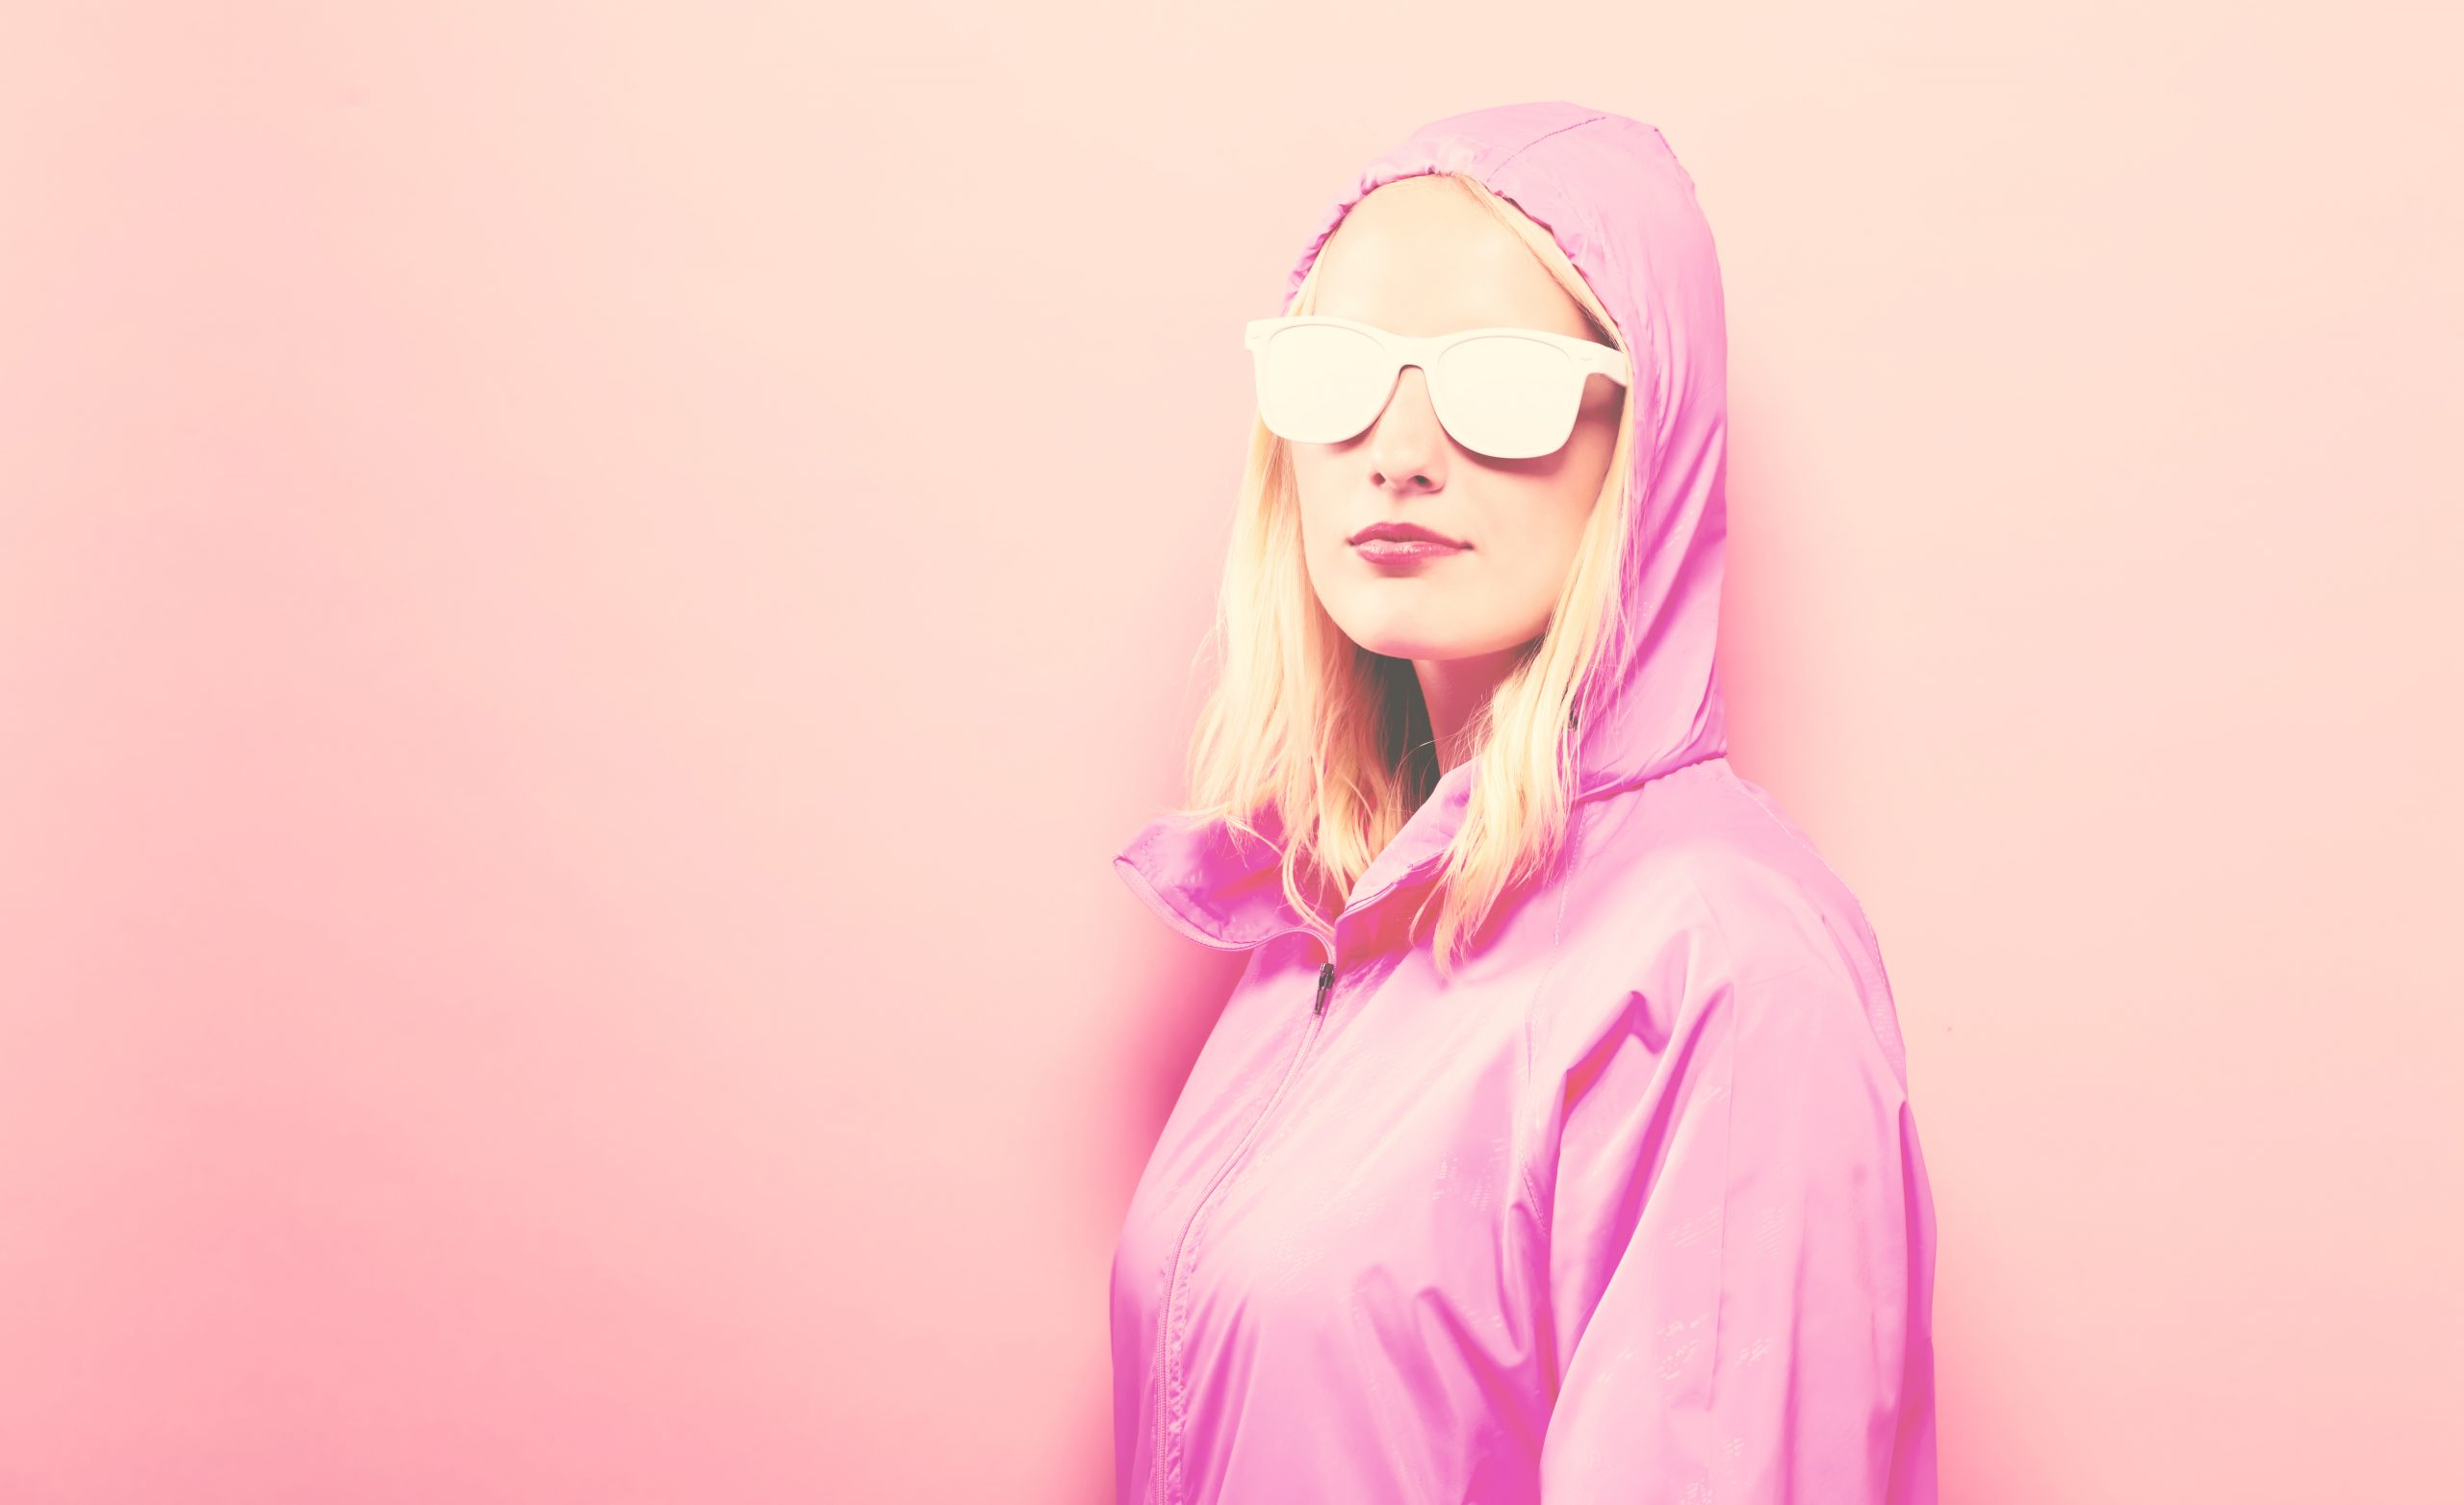 Fashionable woman in raincoat and sunglasses